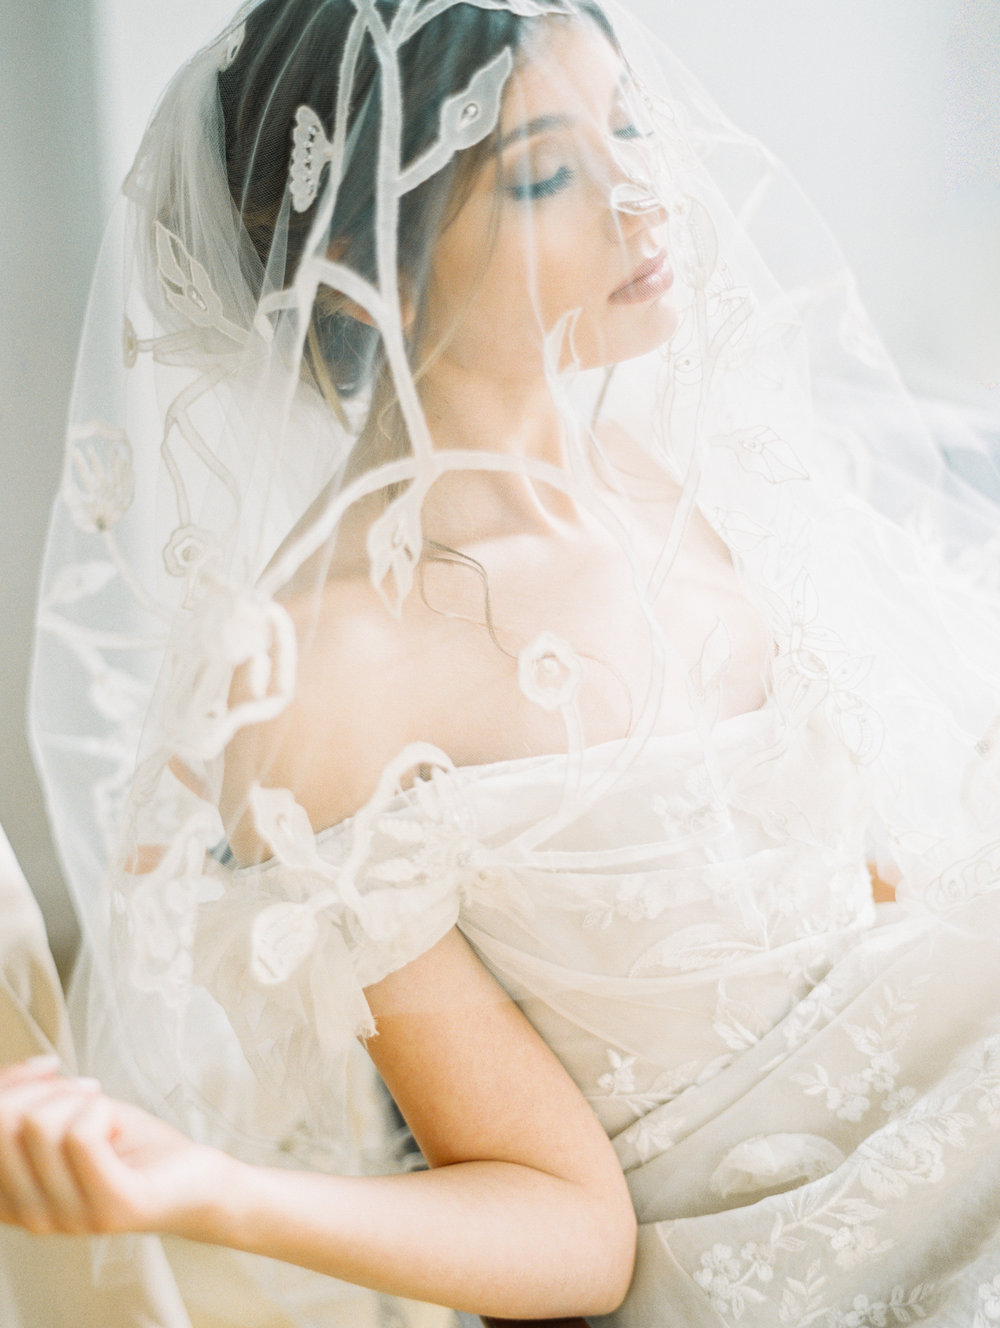 nyc-manhattan-bridal-editorial-newyork-public-library-jessica-bellinger-photography -82.jpg